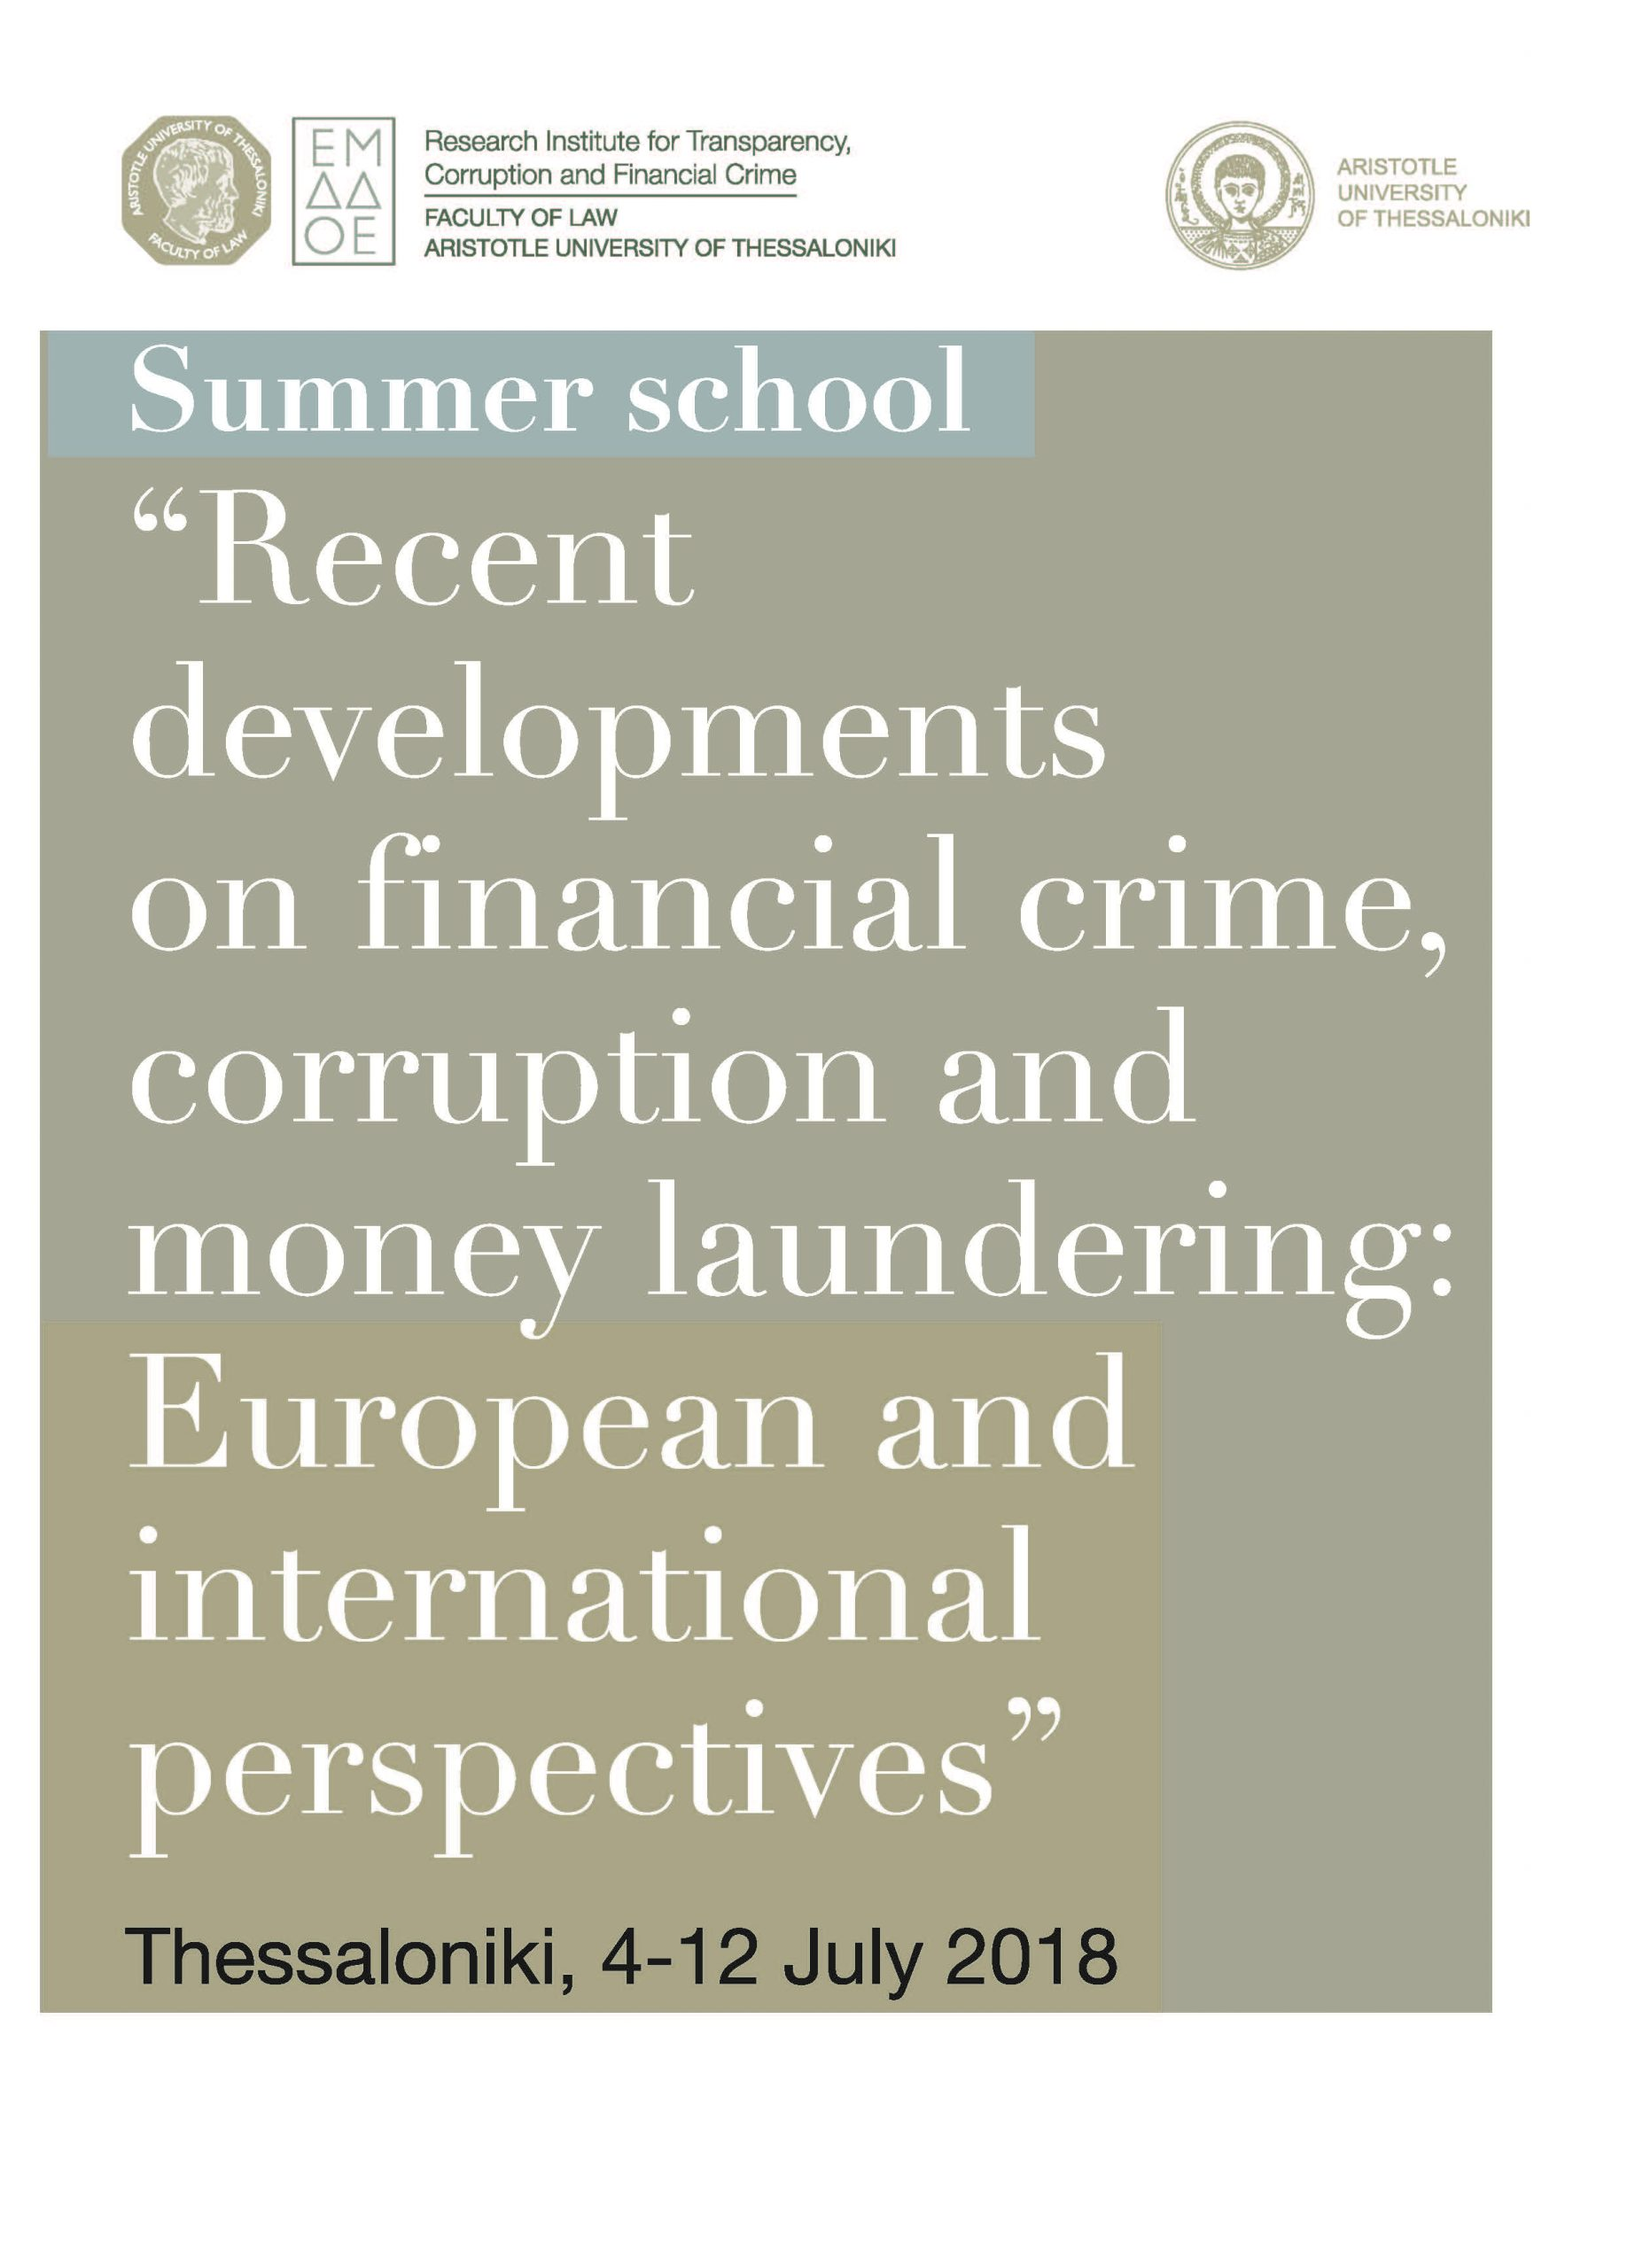 """Summer School """"Recent developments on financial crime, corruption and money laundering: European and international perspectives"""", 4-12 July 2018"""